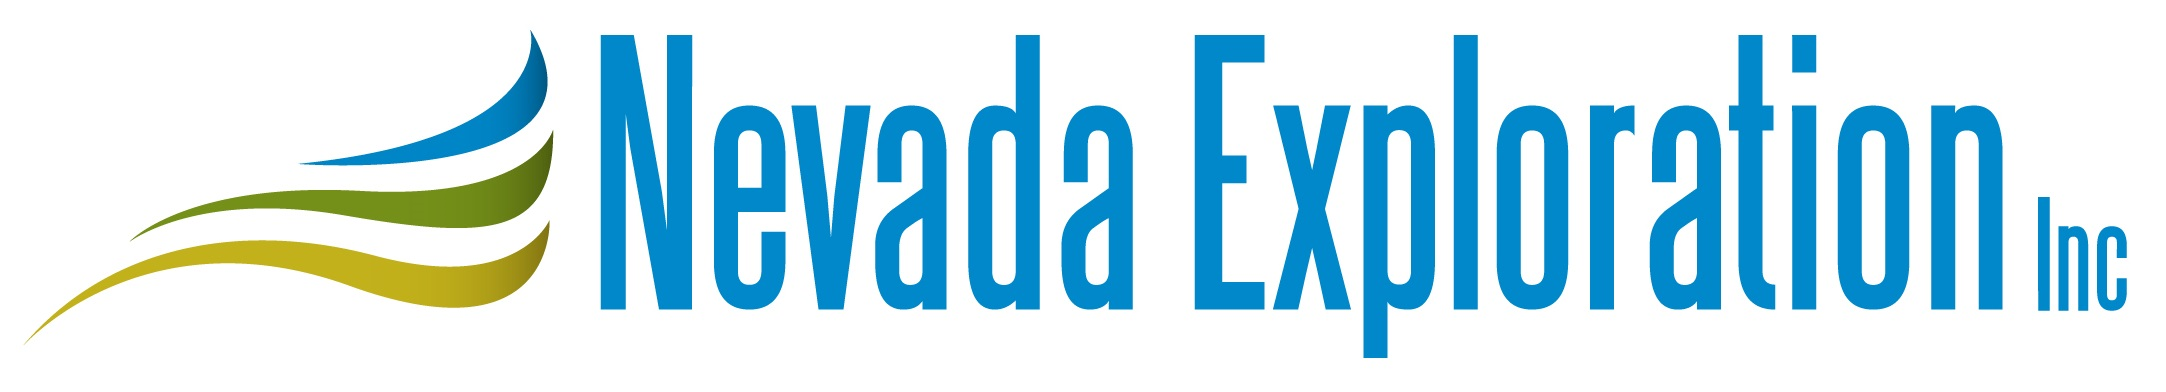 Nevada Exploration Signs Letter of Intent for Earn-In Agreement on its Kelly Creek Project